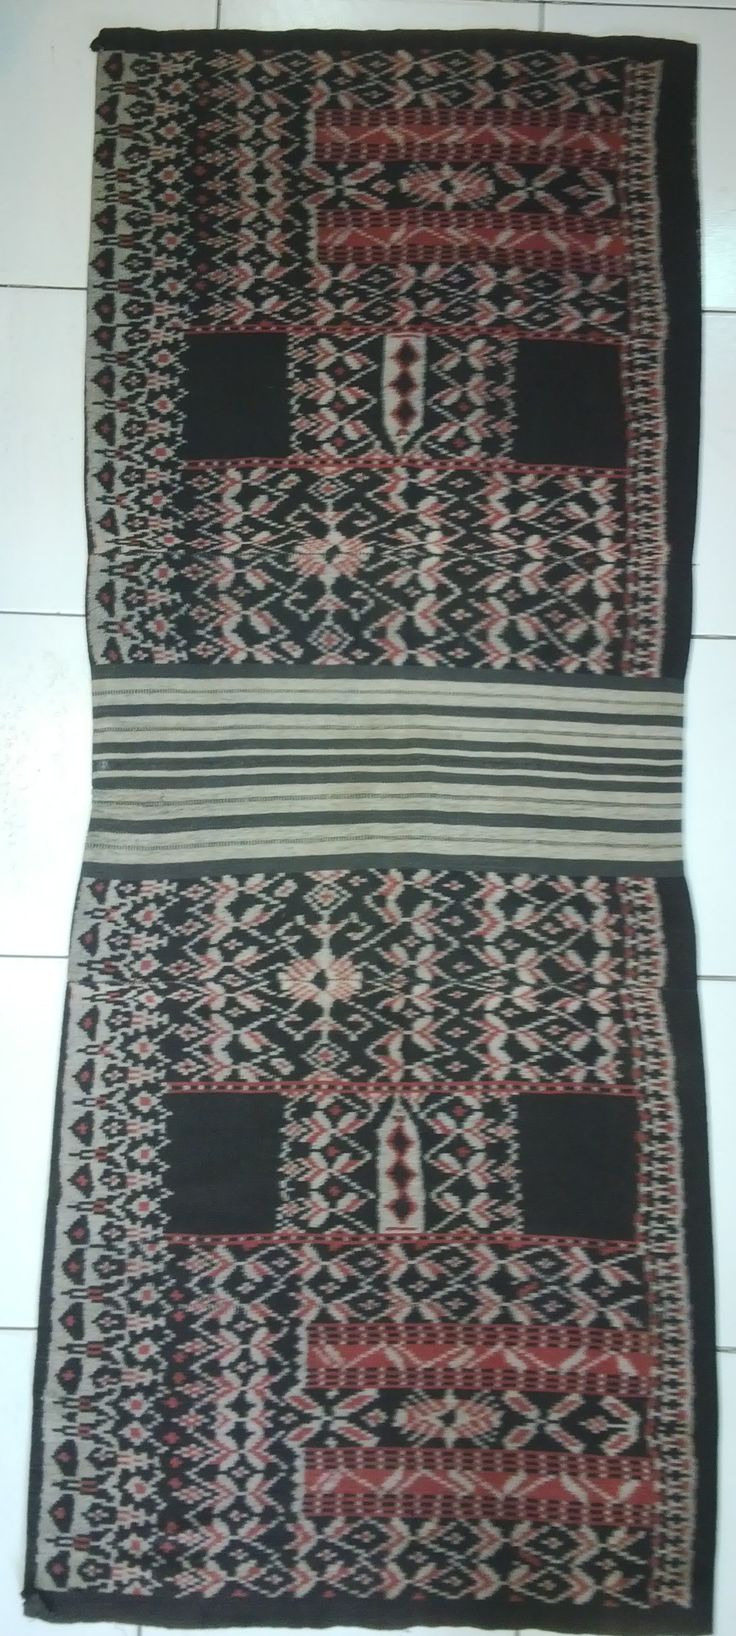 Sarong from rote, indonesia